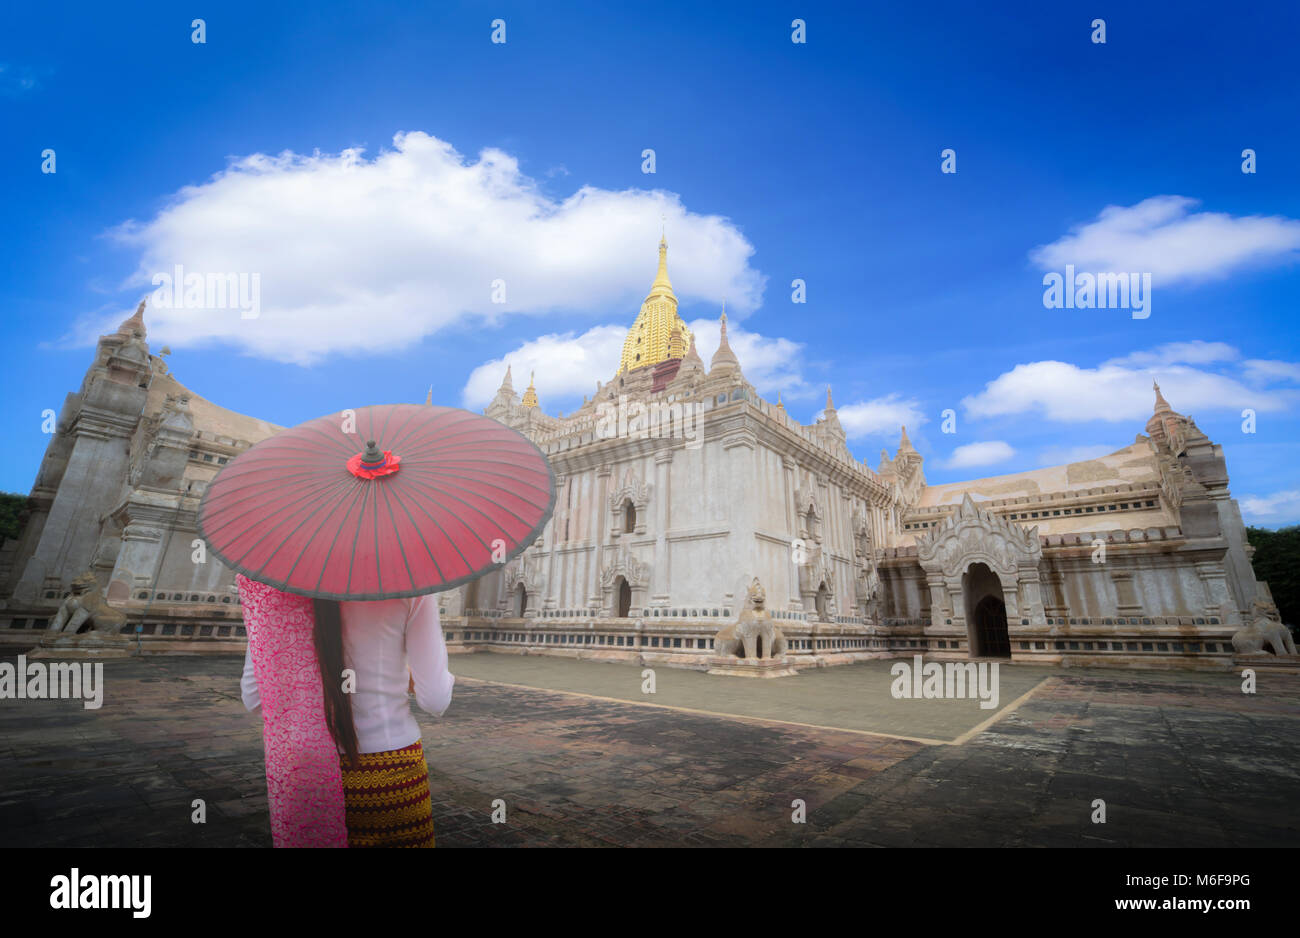 Woman Myanmar holding traditional red umbrella on the Ananda temple at daytime in Bagan, Myanmar. - Stock Image